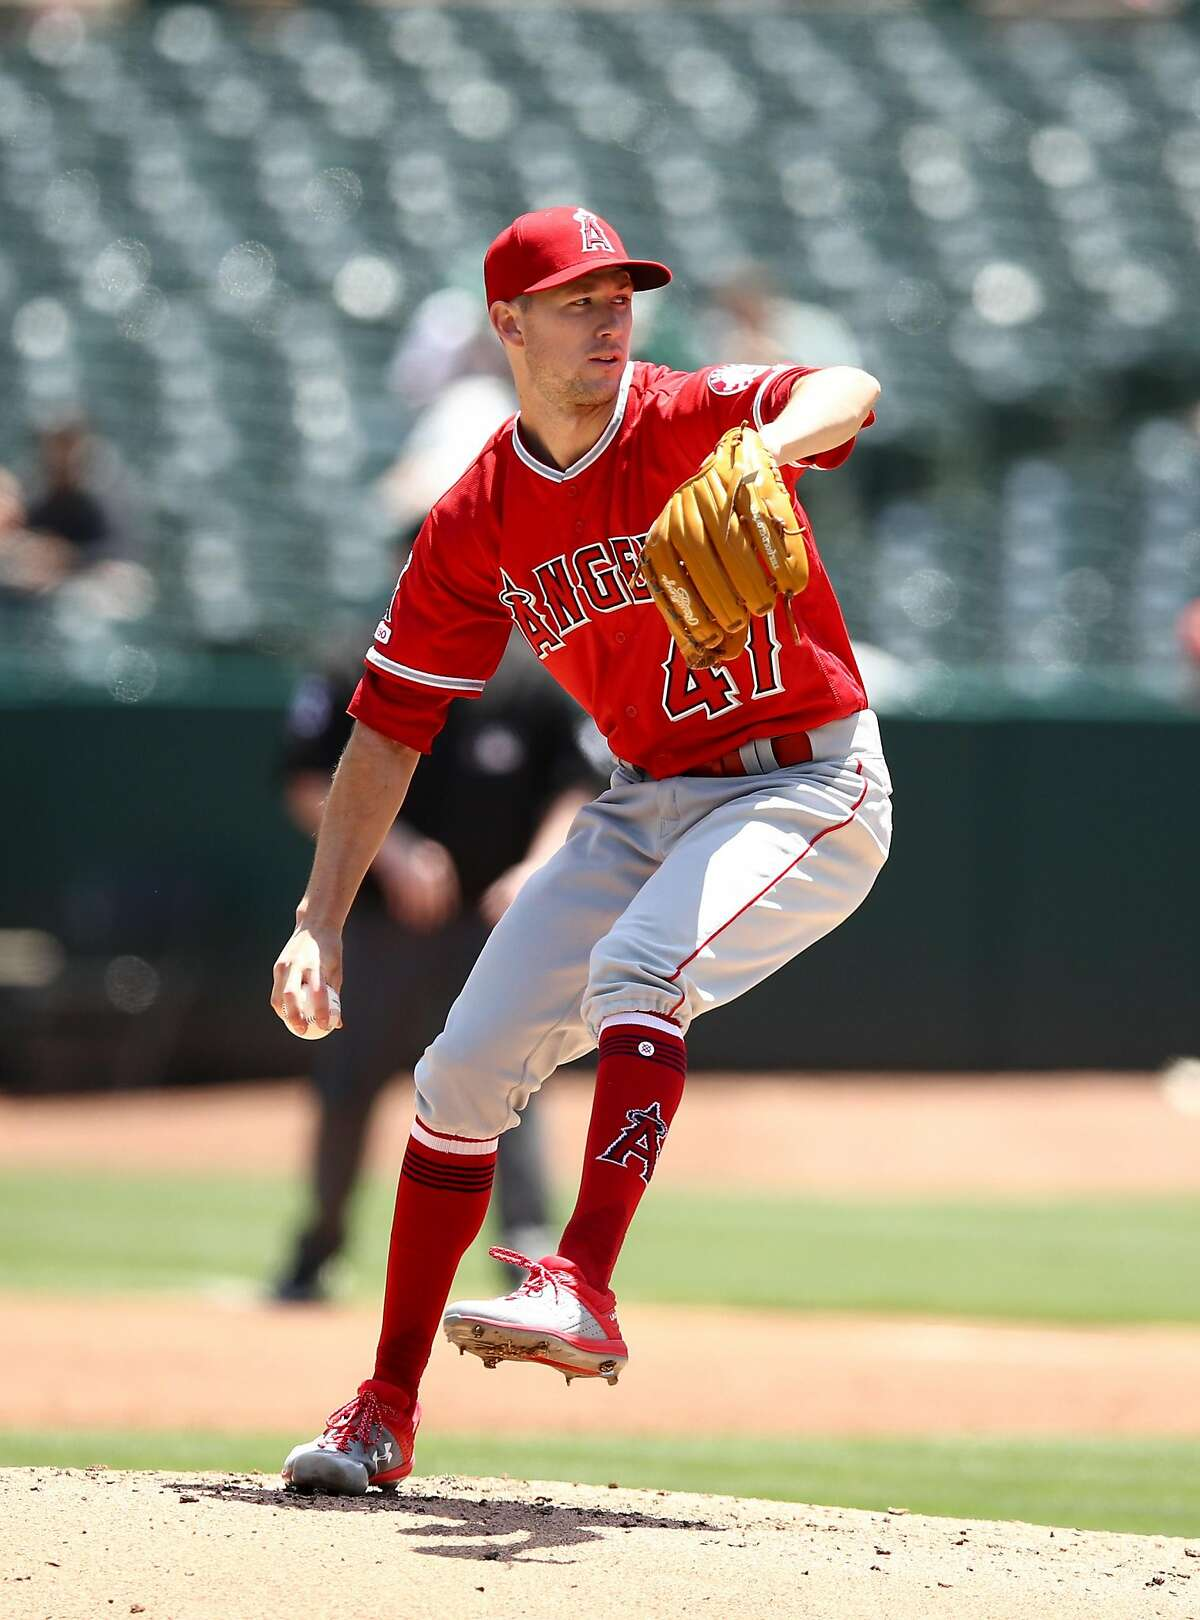 OAKLAND, CALIFORNIA - MAY 29: Griffin Canning #47 of the Los Angeles Angels pitches against the Oakland Athletics in the first inning at Oakland-Alameda County Coliseum on May 29, 2019 in Oakland, California. (Photo by Ezra Shaw/Getty Images)